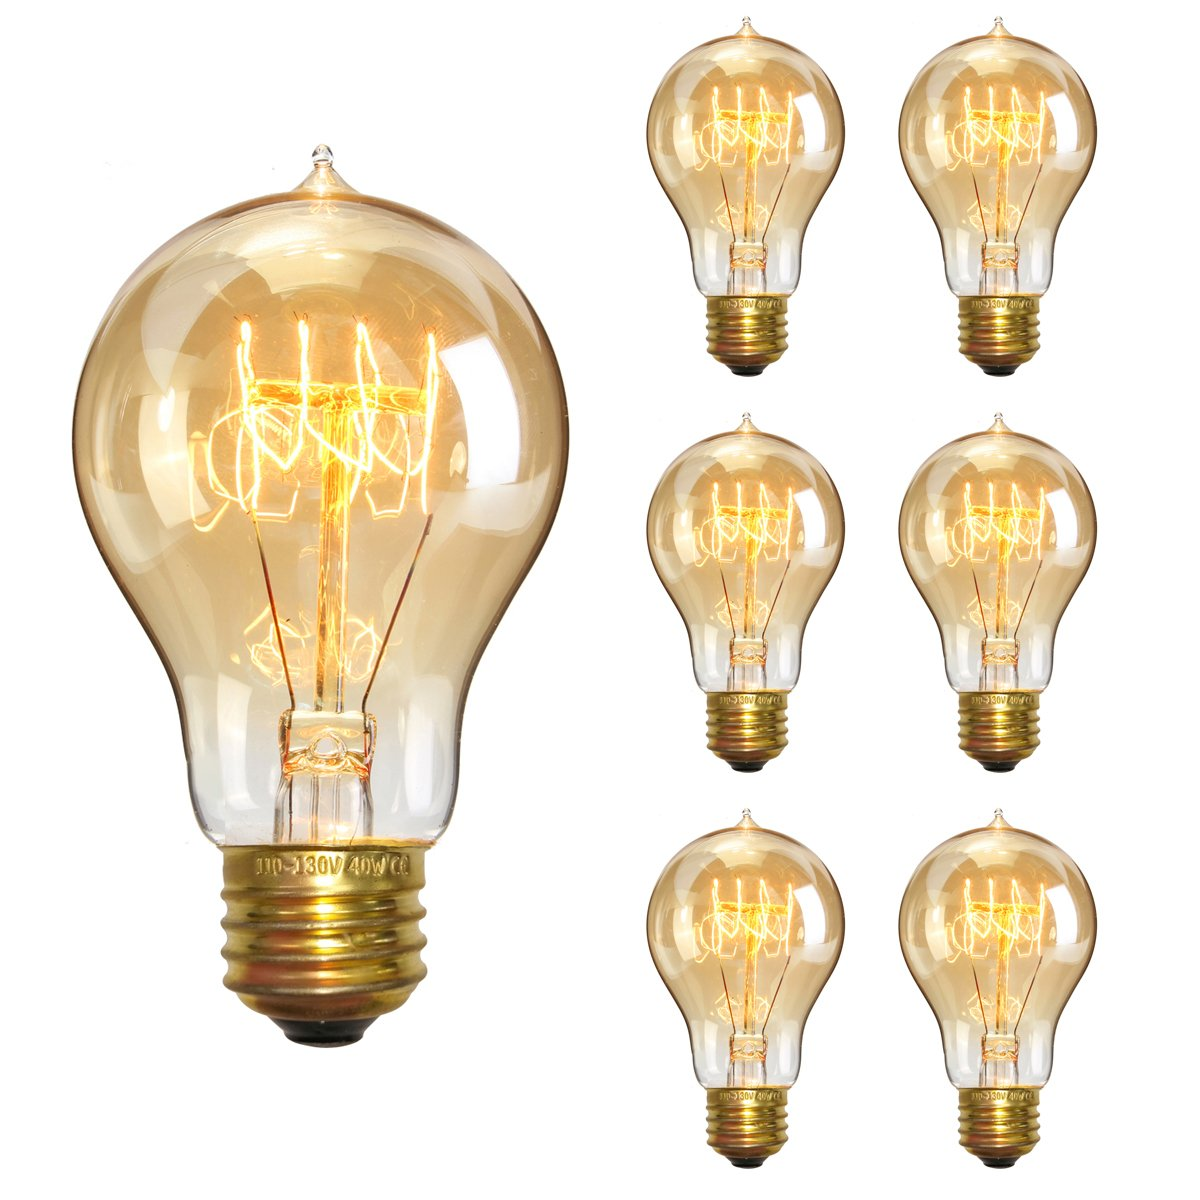 KINGSO Vintage Edison Bulbs 40W Filament Incandescent Antique Dimmable Light Bulb for Home Light Fixtures E27 Base A19 110V - 6 Pack